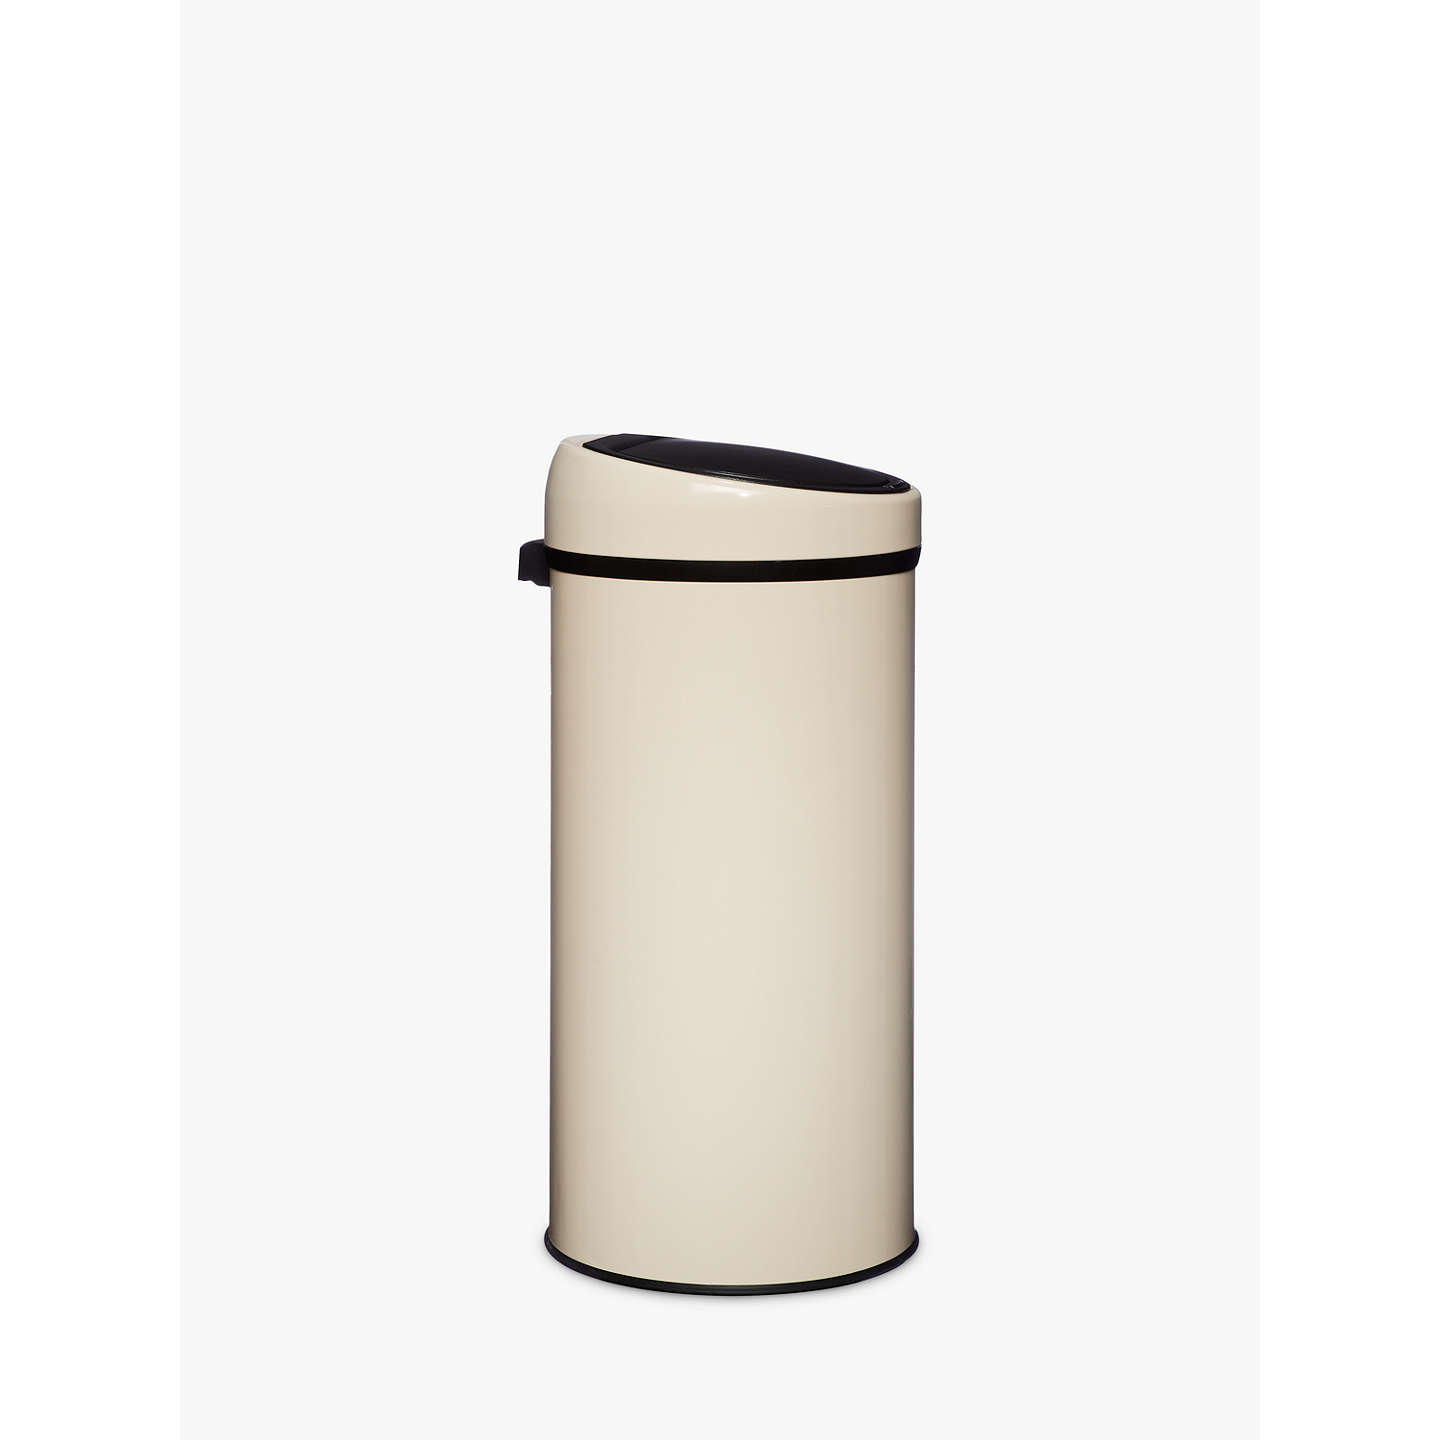 BuyJohn Lewis Touch Top Bin, 30L, Cream Online at johnlewis.com